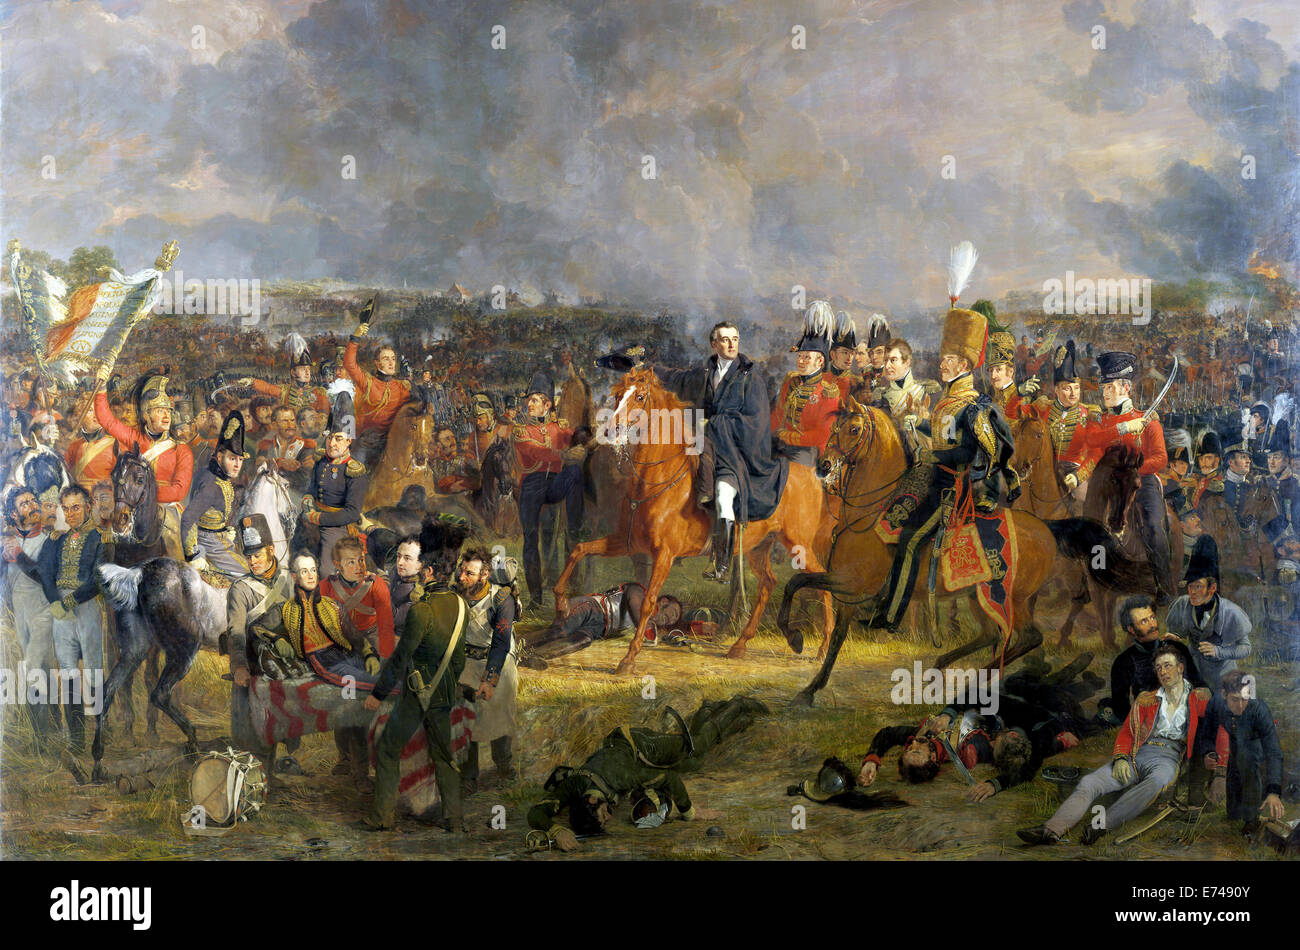 The Battle of Waterloo - by Jan Willem Pieneman, 1824 - Stock Image